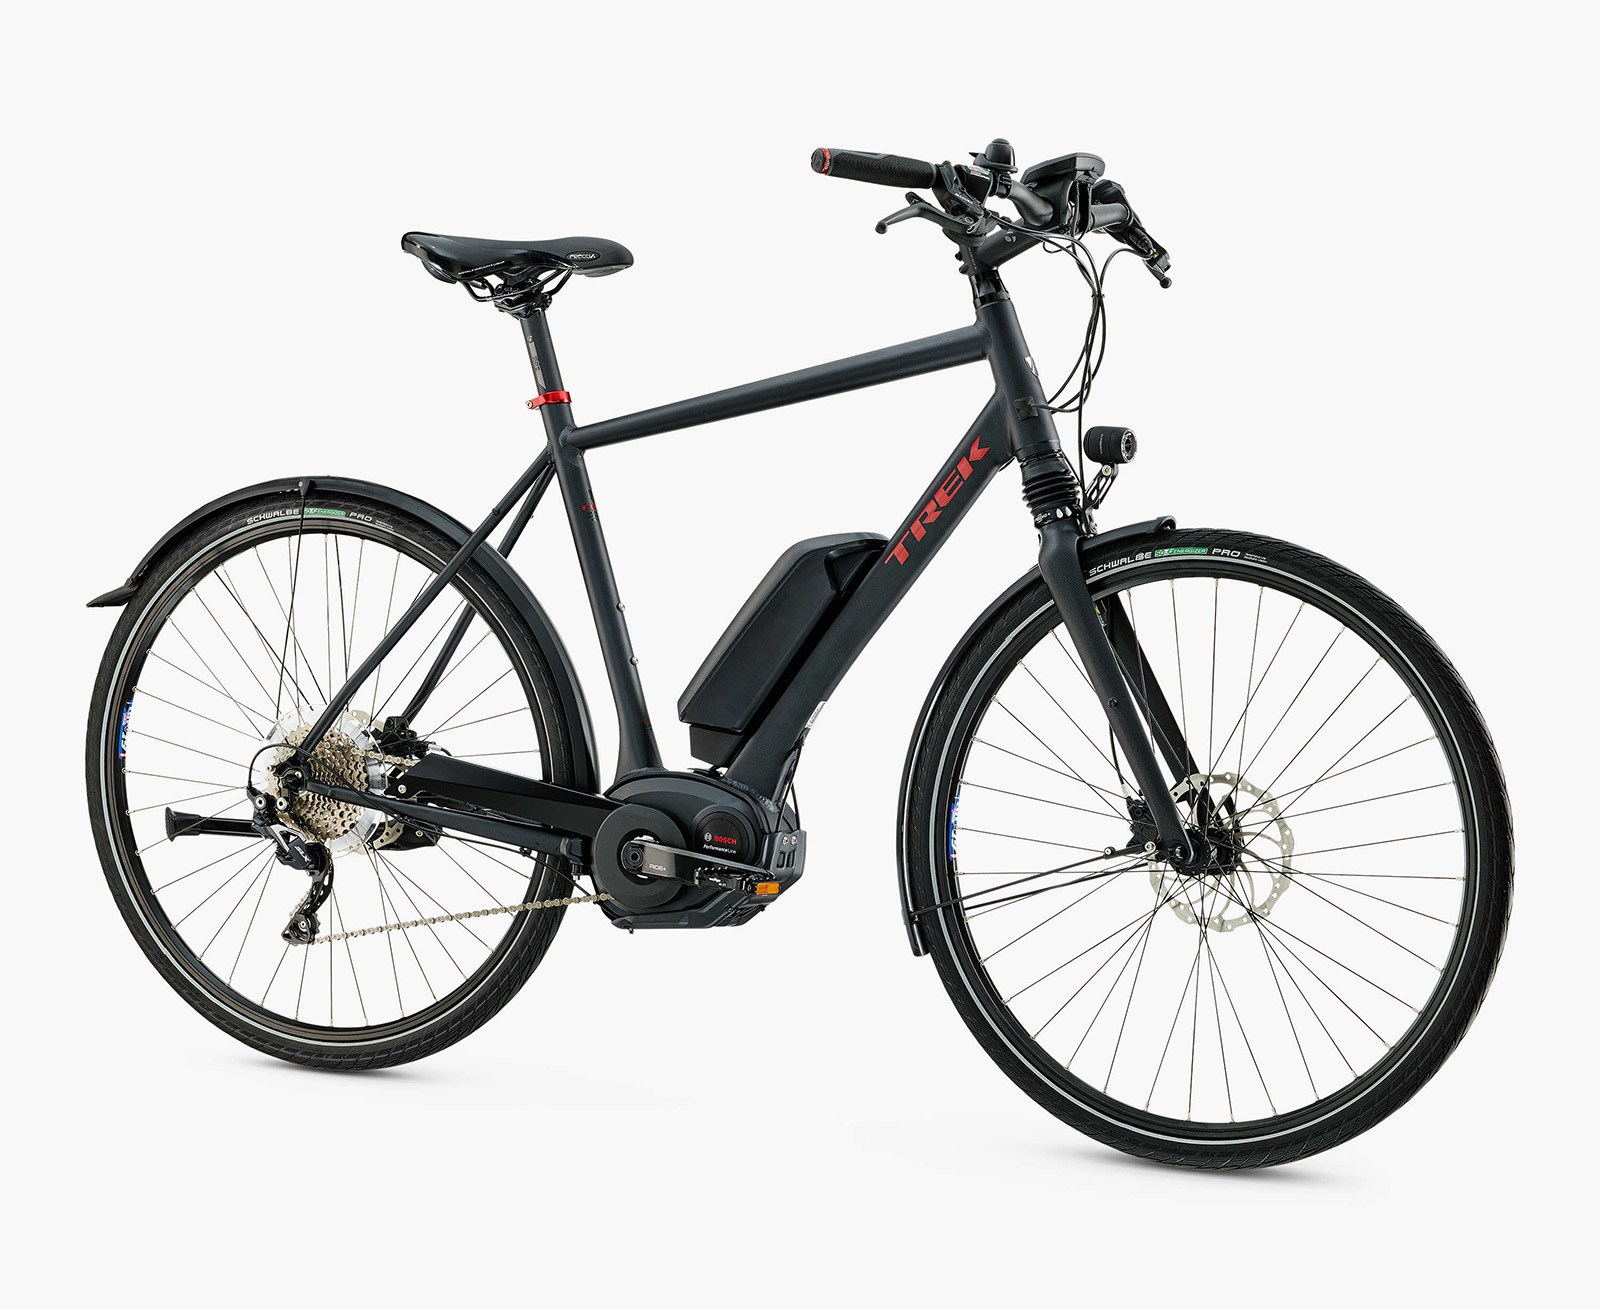 The Trek XM 700 could meet my needs. Once I add a rack and some panniers. It costs US$3500 and includes disc brakes, 1x drivetrain and a Bosch Motor.